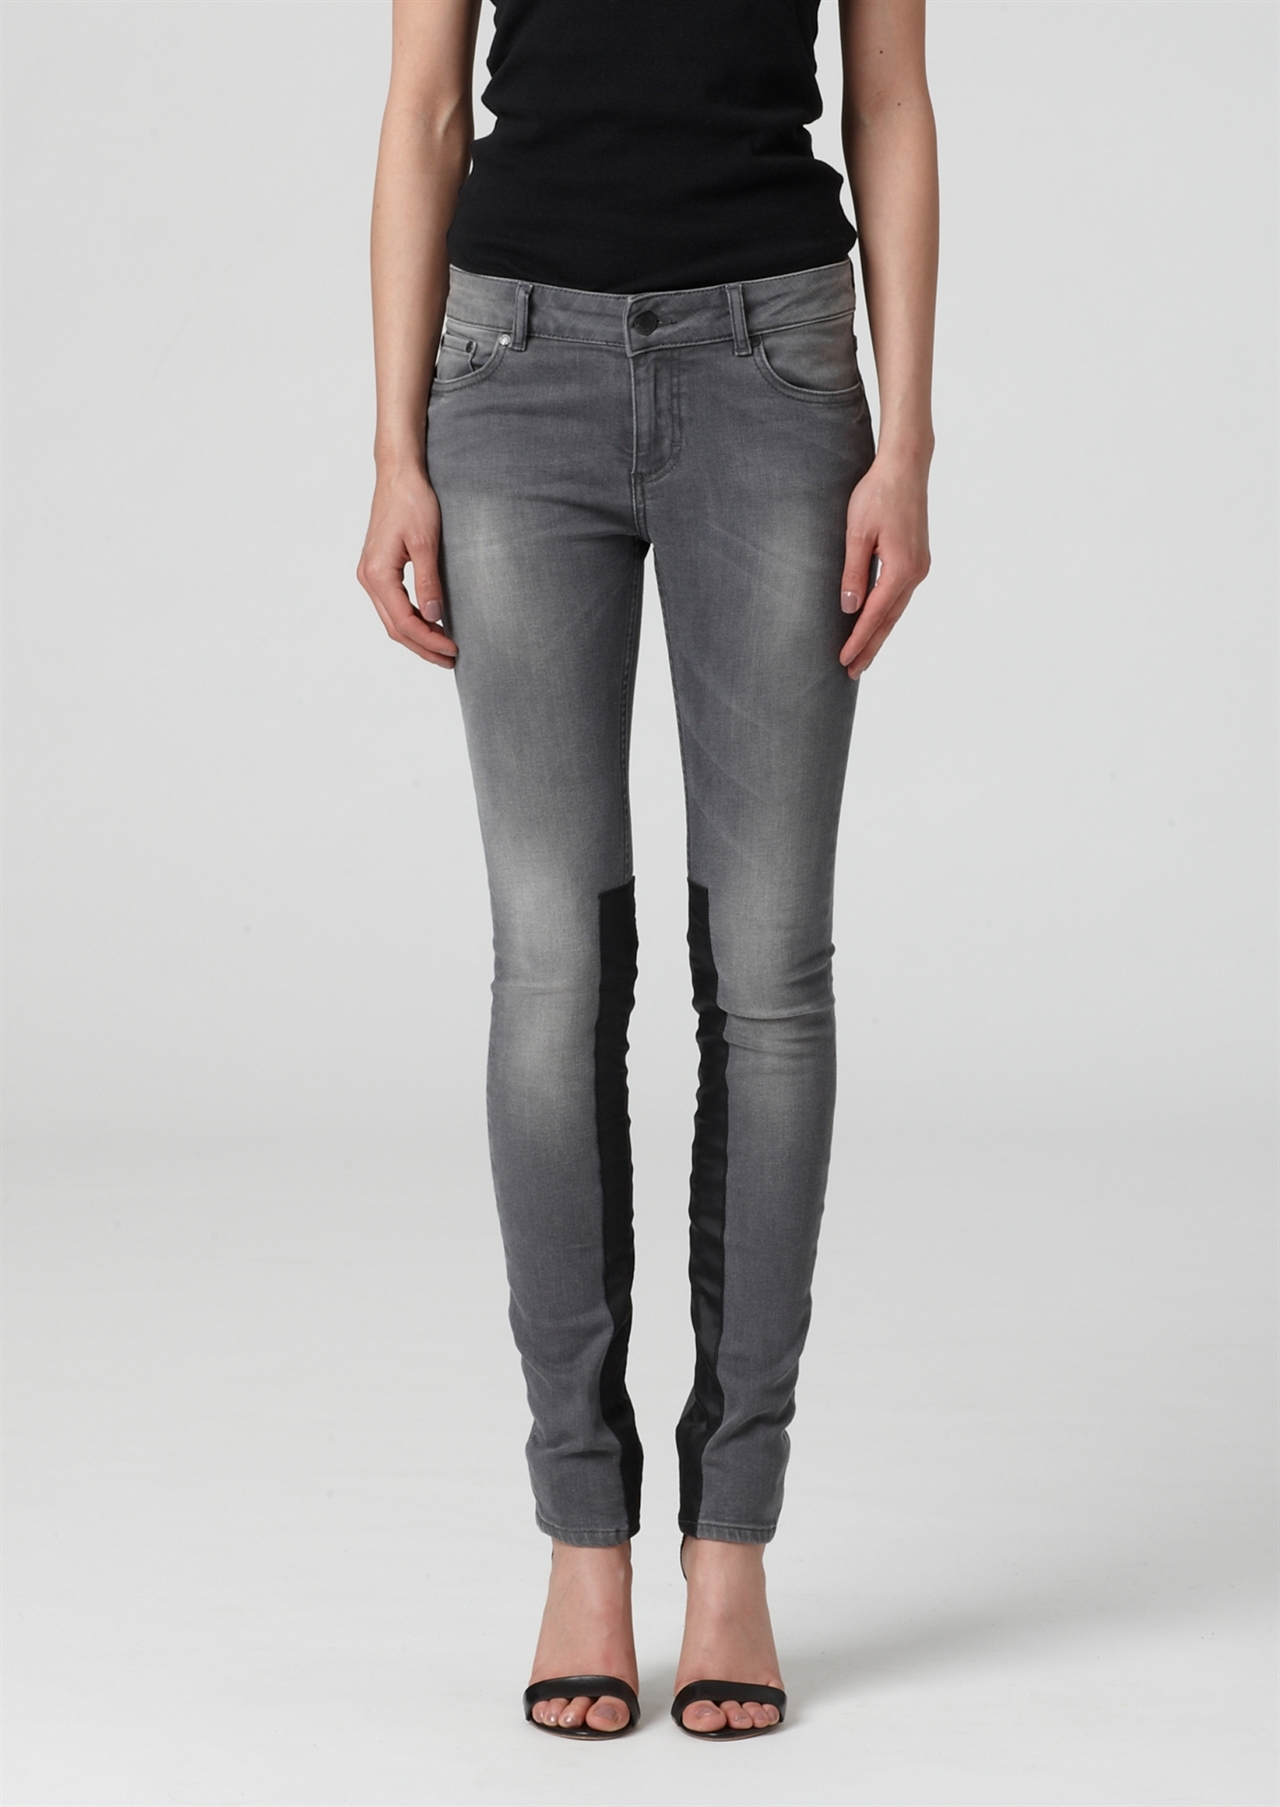 Shop women's jeans at cuttackfirstboutique.cf Discover a stylish selection of the latest brand name and designer fashions all at a great value.